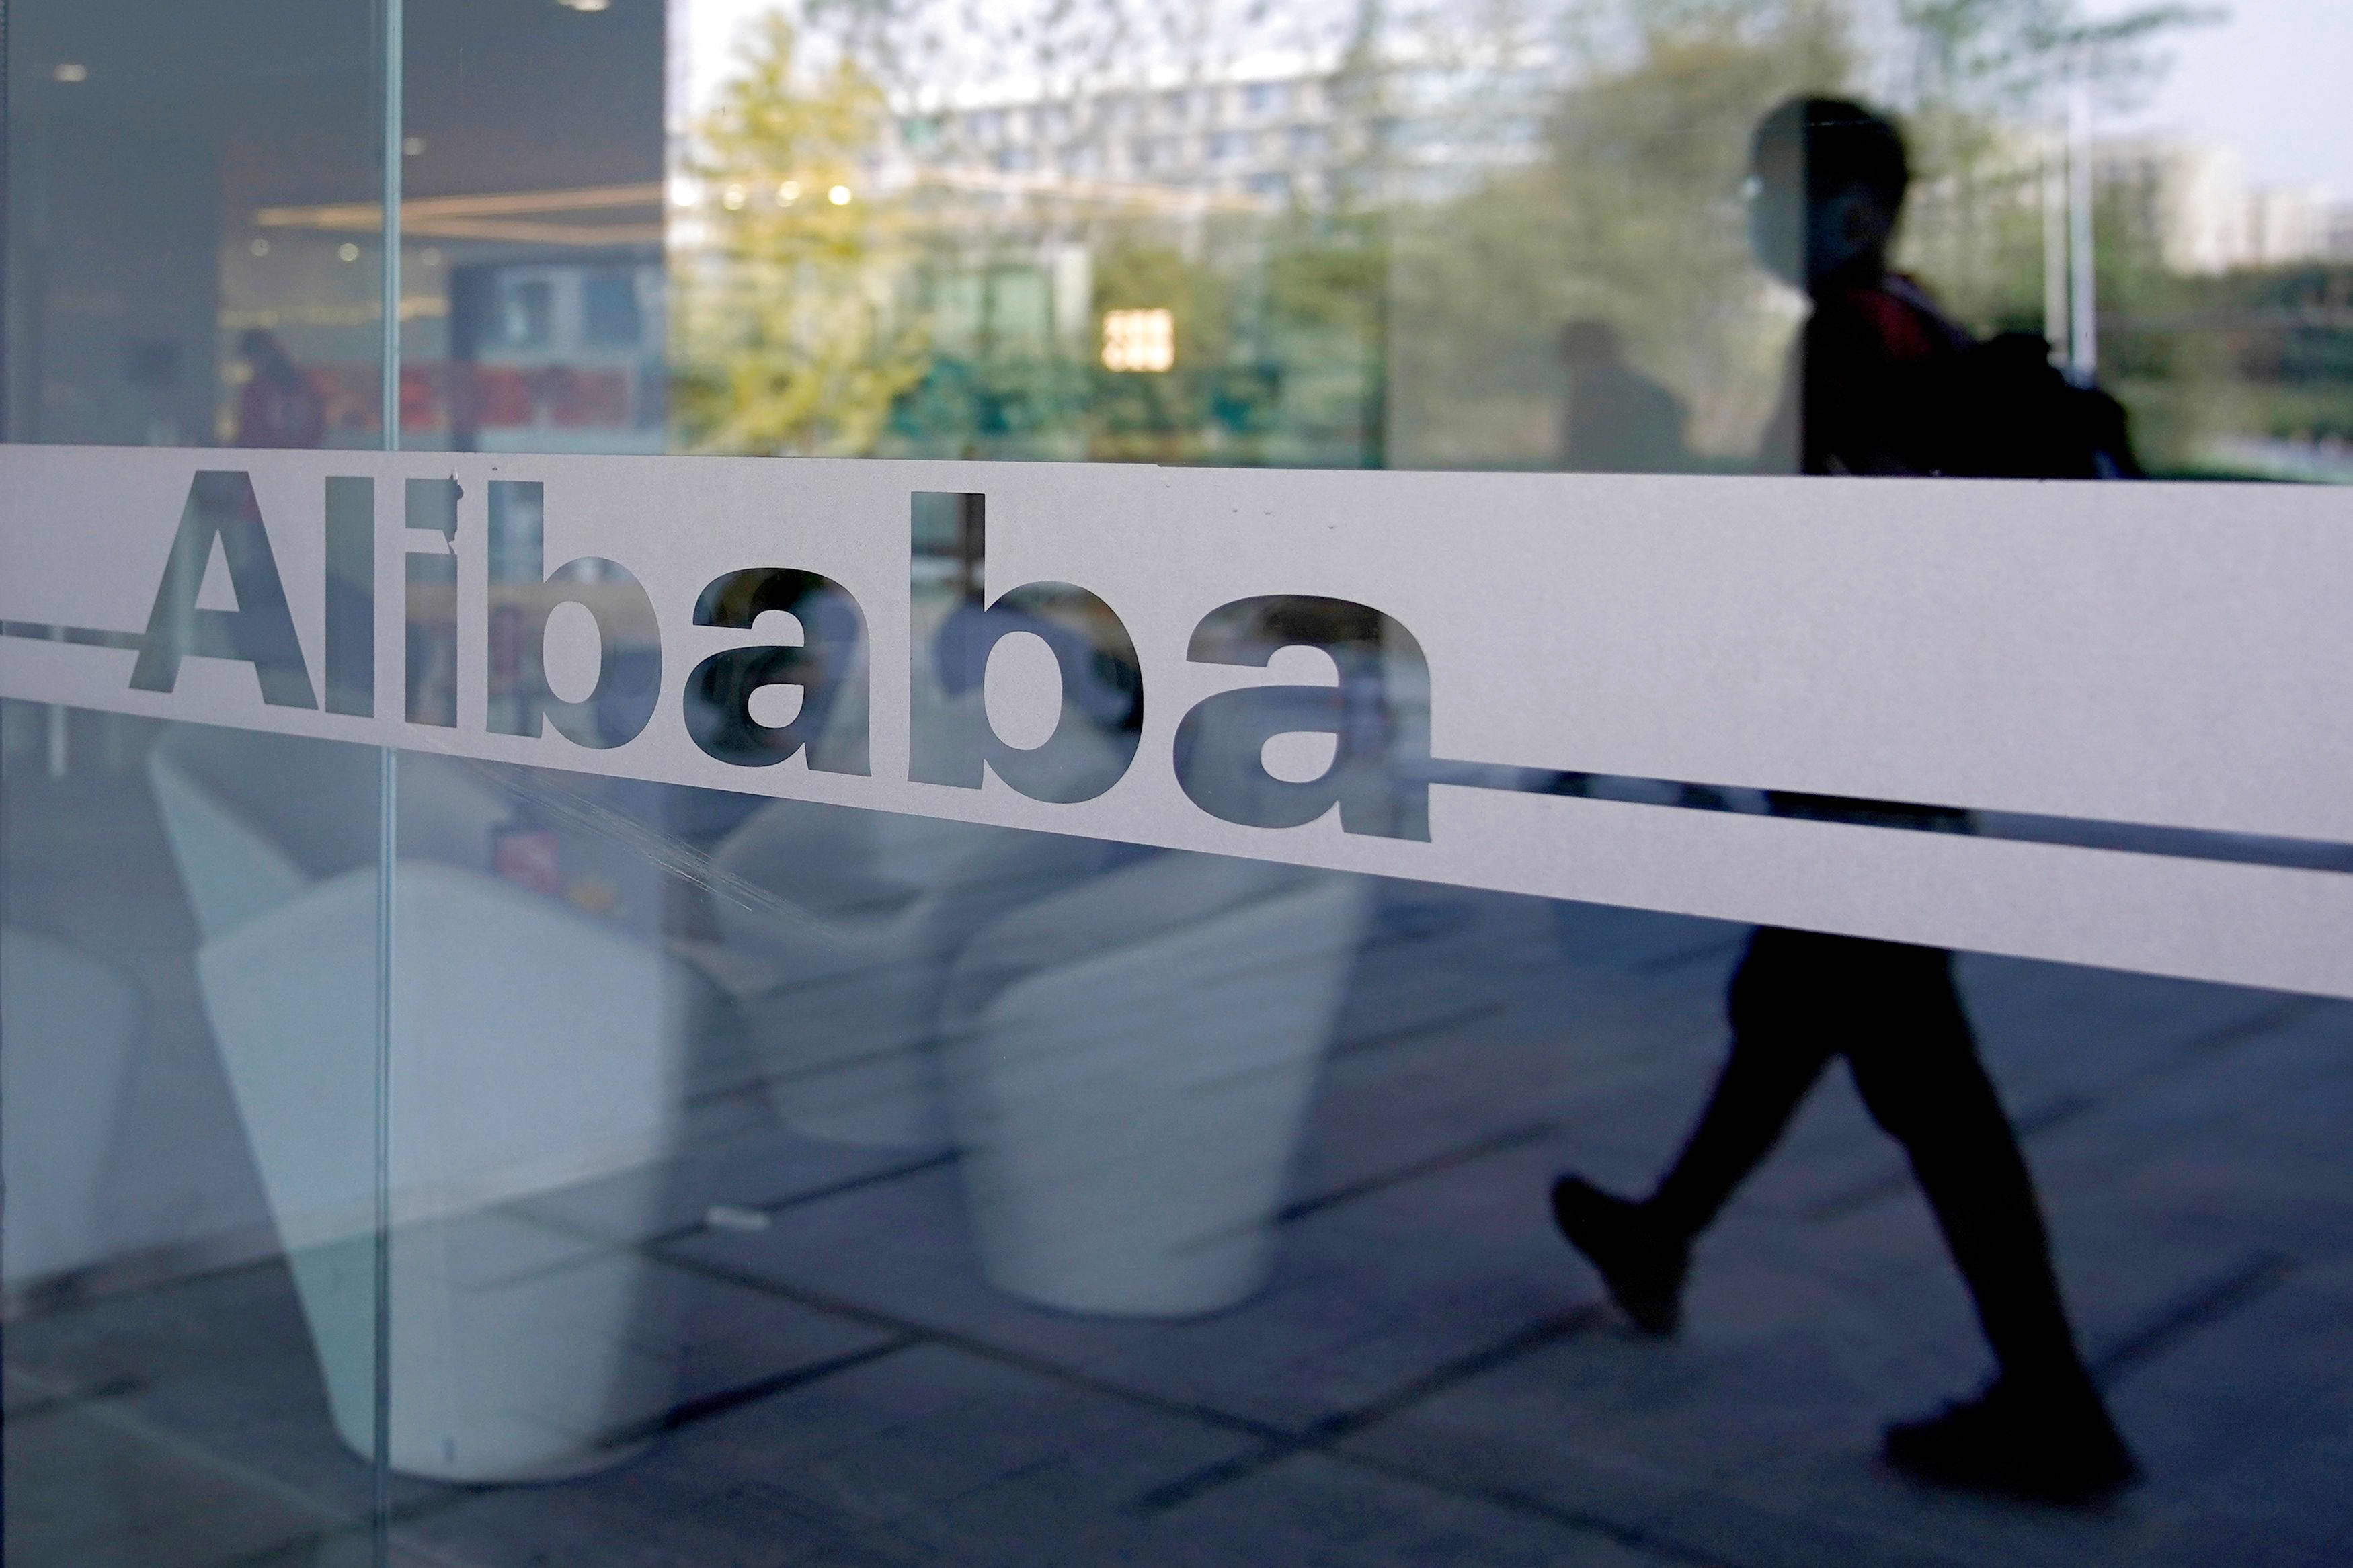 Alibaba shares jump 5% after being hit with $2.8 billion fine in anti-monopoly probe